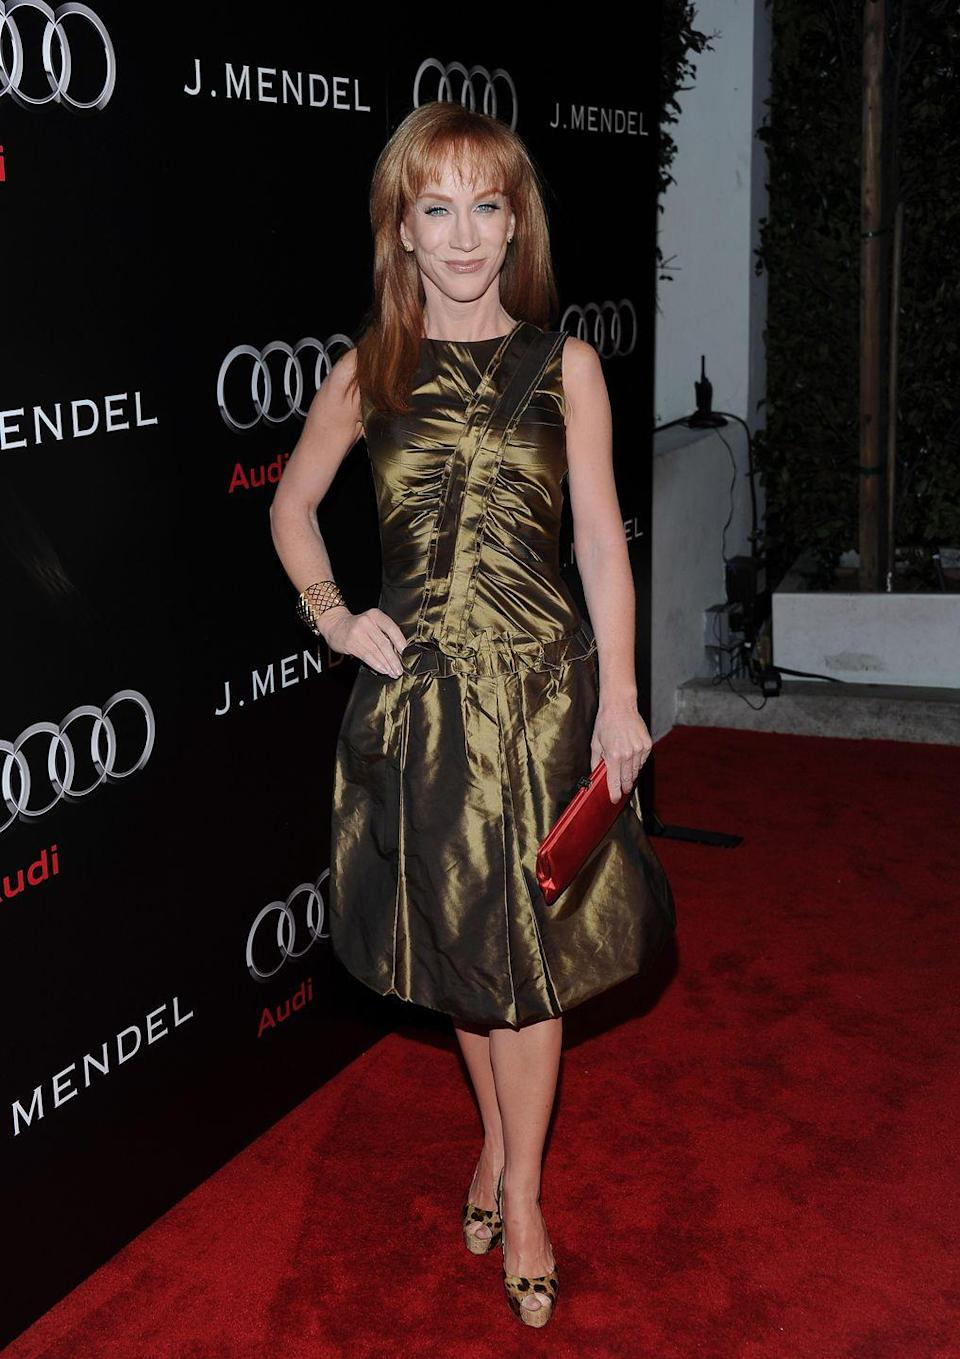 "<p>Kathy Griffin has used her cosmetic procedures as inspiration for her stand-up routines. But the comedian had an awful experience with liposuction, which led to some self-revelations. ""What I can't figure out is why I wasted time worrying about my looks,"" <a href=""https://www.nydailynews.com/entertainment/gossip/kathy-griffin-opens-botched-liposuction-jennifer-aniston-article-1.176229"" rel=""nofollow noopener"" target=""_blank"" data-ylk=""slk:she said"" class=""link rapid-noclick-resp"">she said</a>. ""I am a comedian. I'm not on the runway in Milan. Believe it or not, people don't come to see me really thinking I'm going to look like Jennifer Aniston.""</p>"